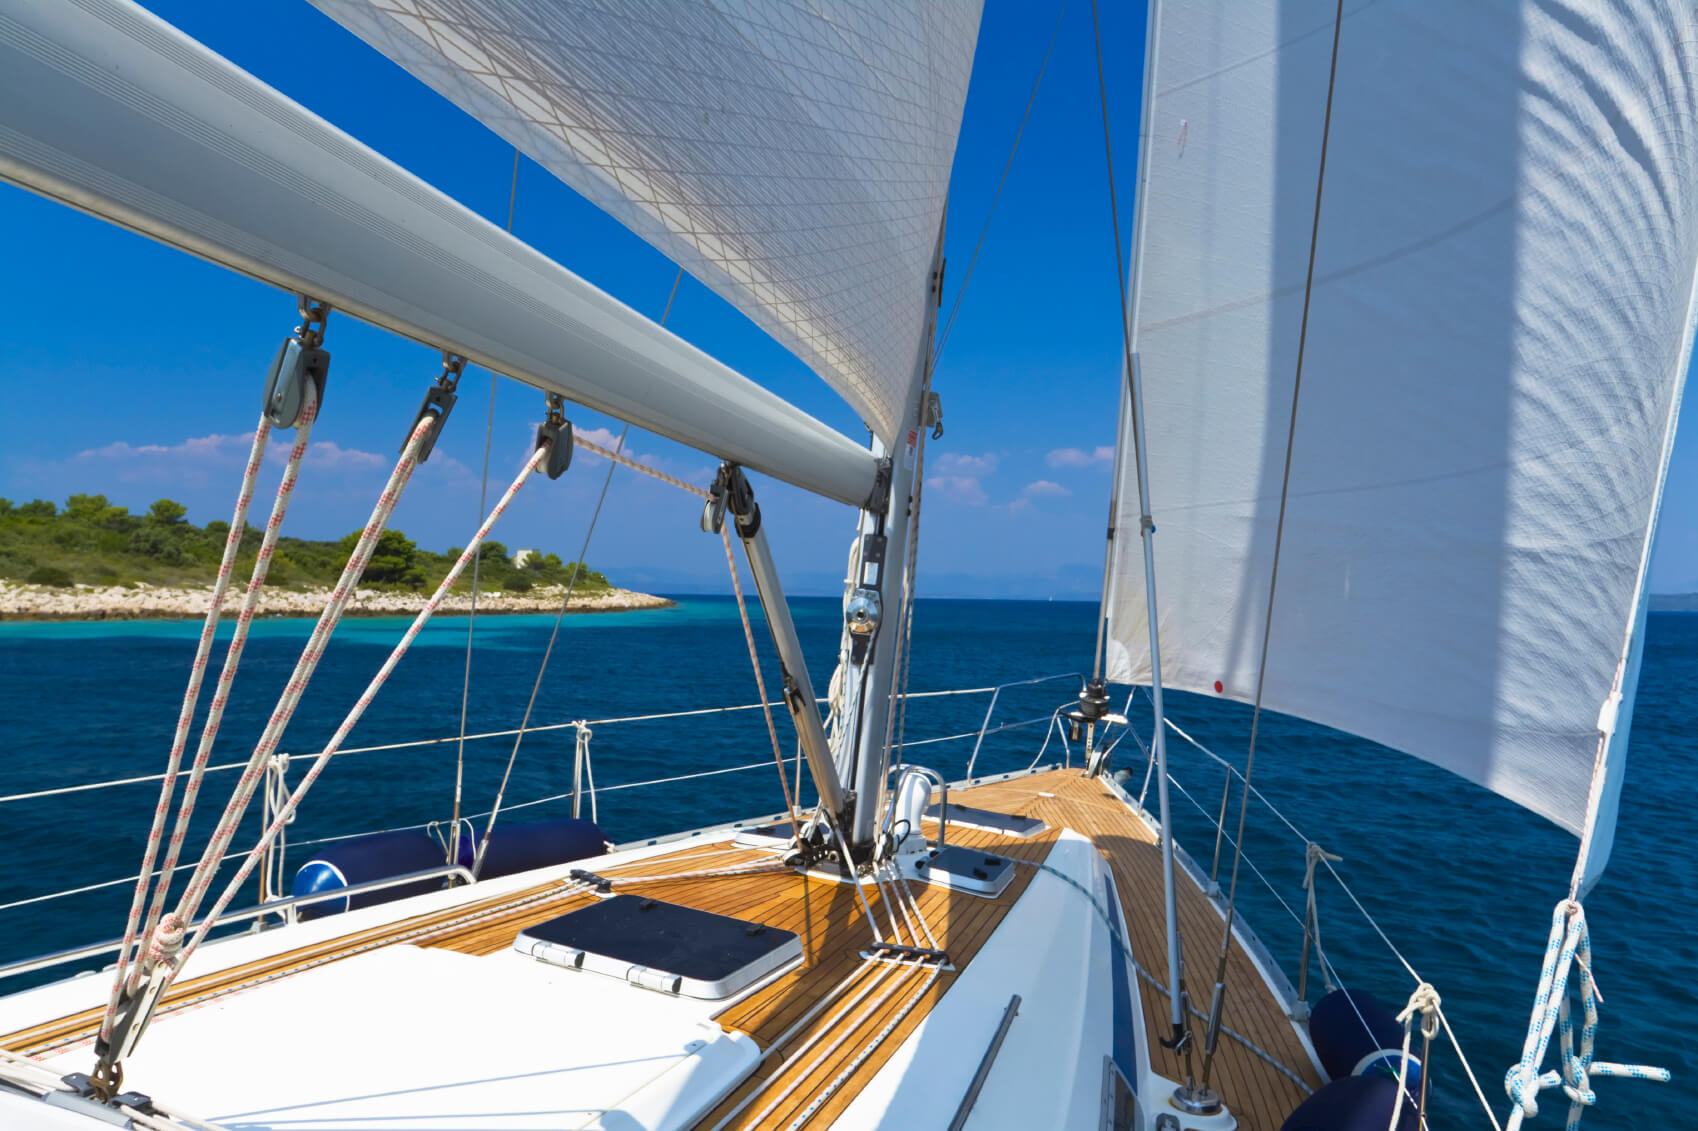 How To Tack And Jibe When Sailing Trident Marine Insurance